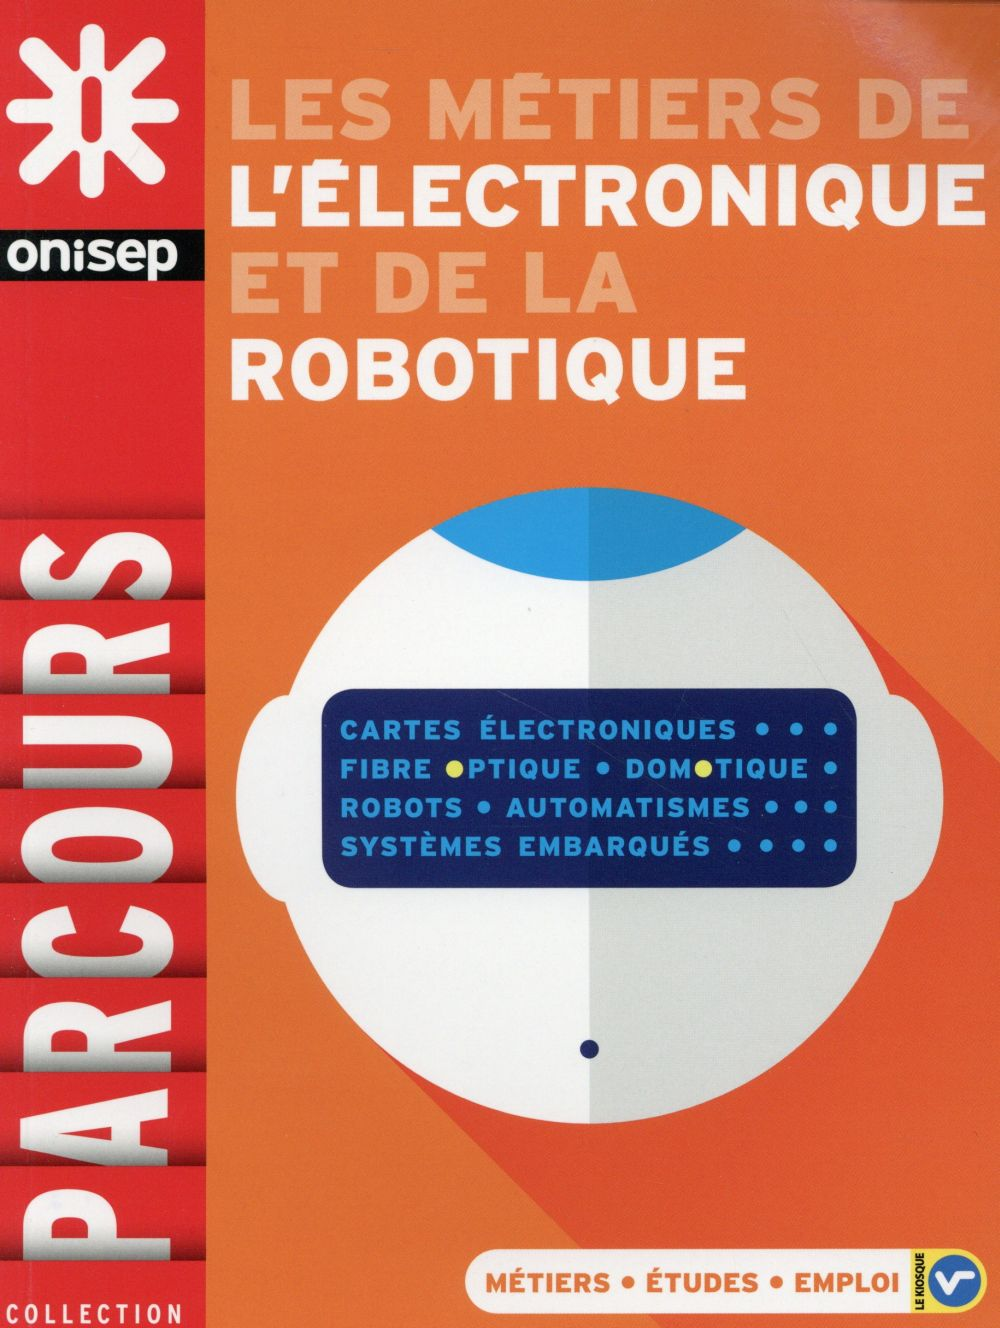 ELECTRONIQUE, ROBOTIQUE 2015